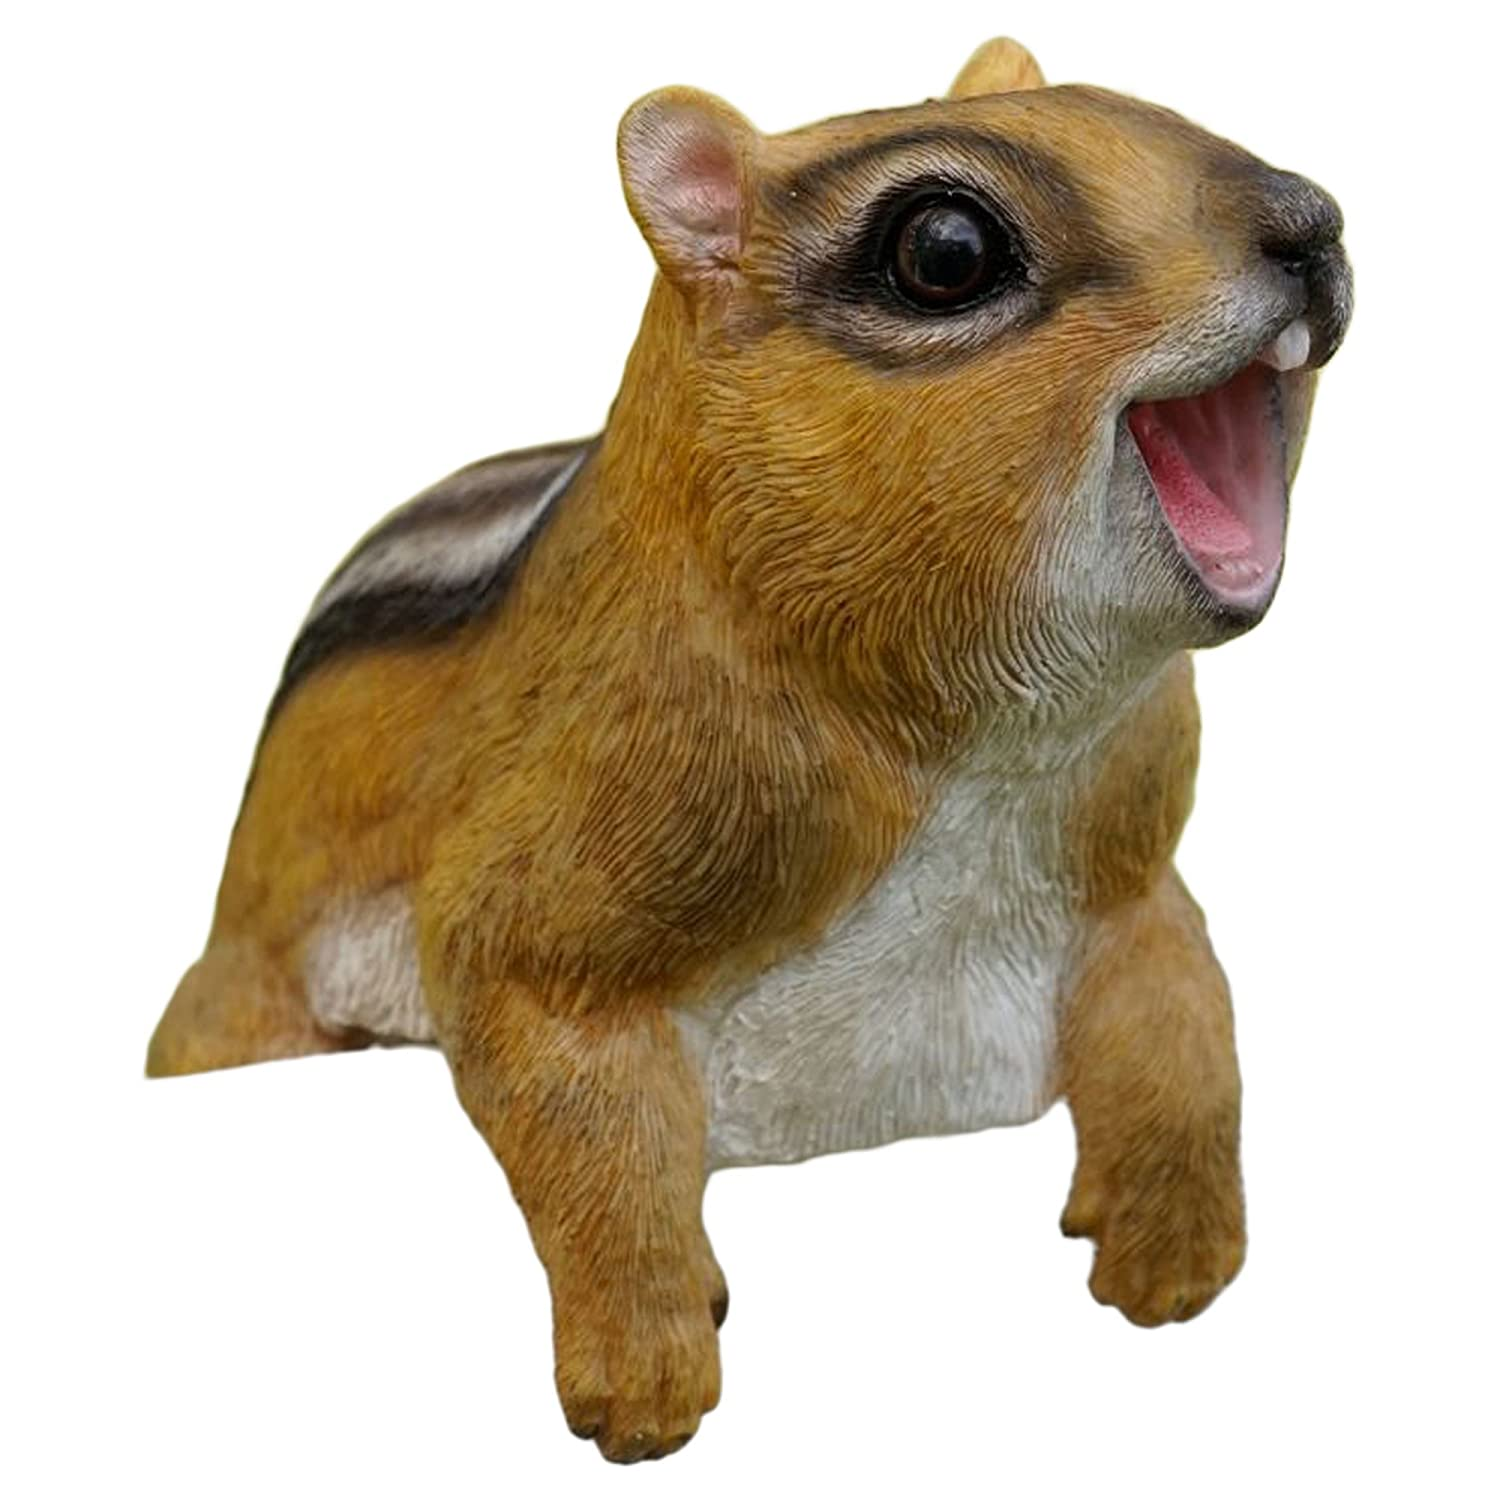 Marshall Home and Garden Playful Chipmunk Forest Brown 8 Inch Resin Stone Decorative Fence Hanger